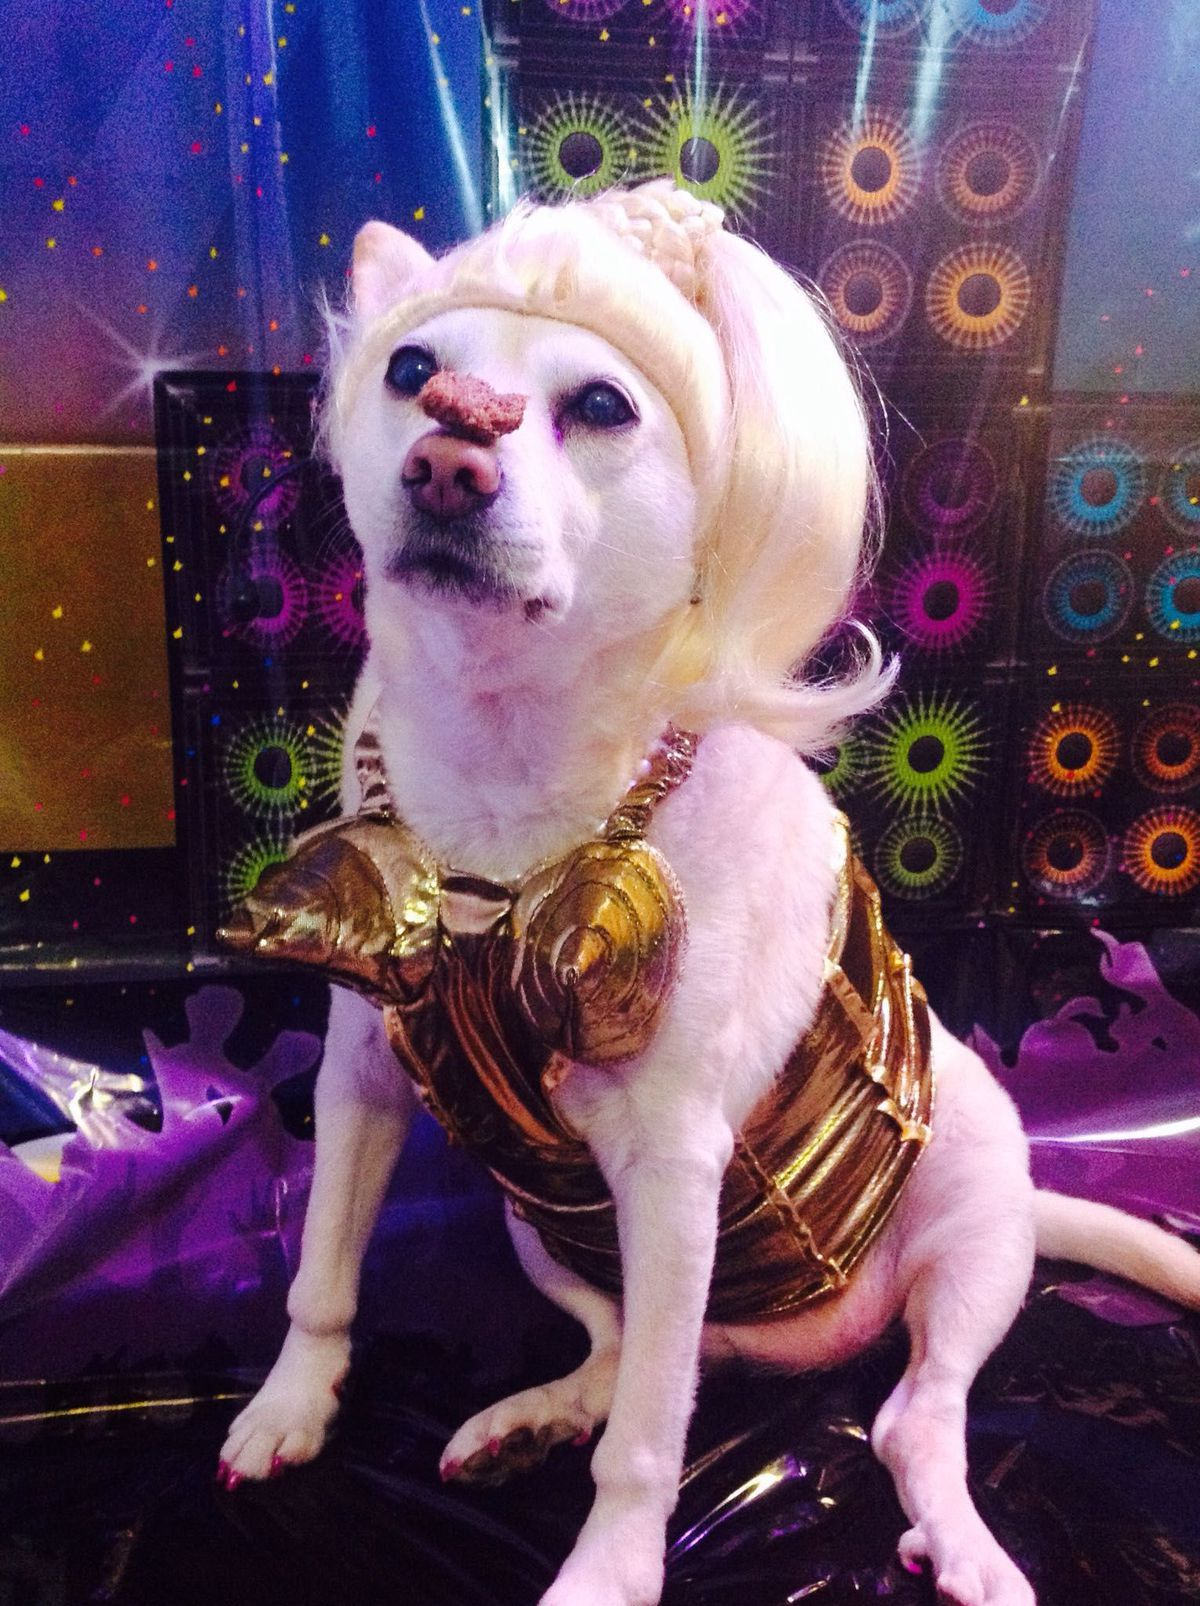 Dog Dressed As Madonna Will Totally Win The Costume Contest Puppy Costume Dogs Costume Contest